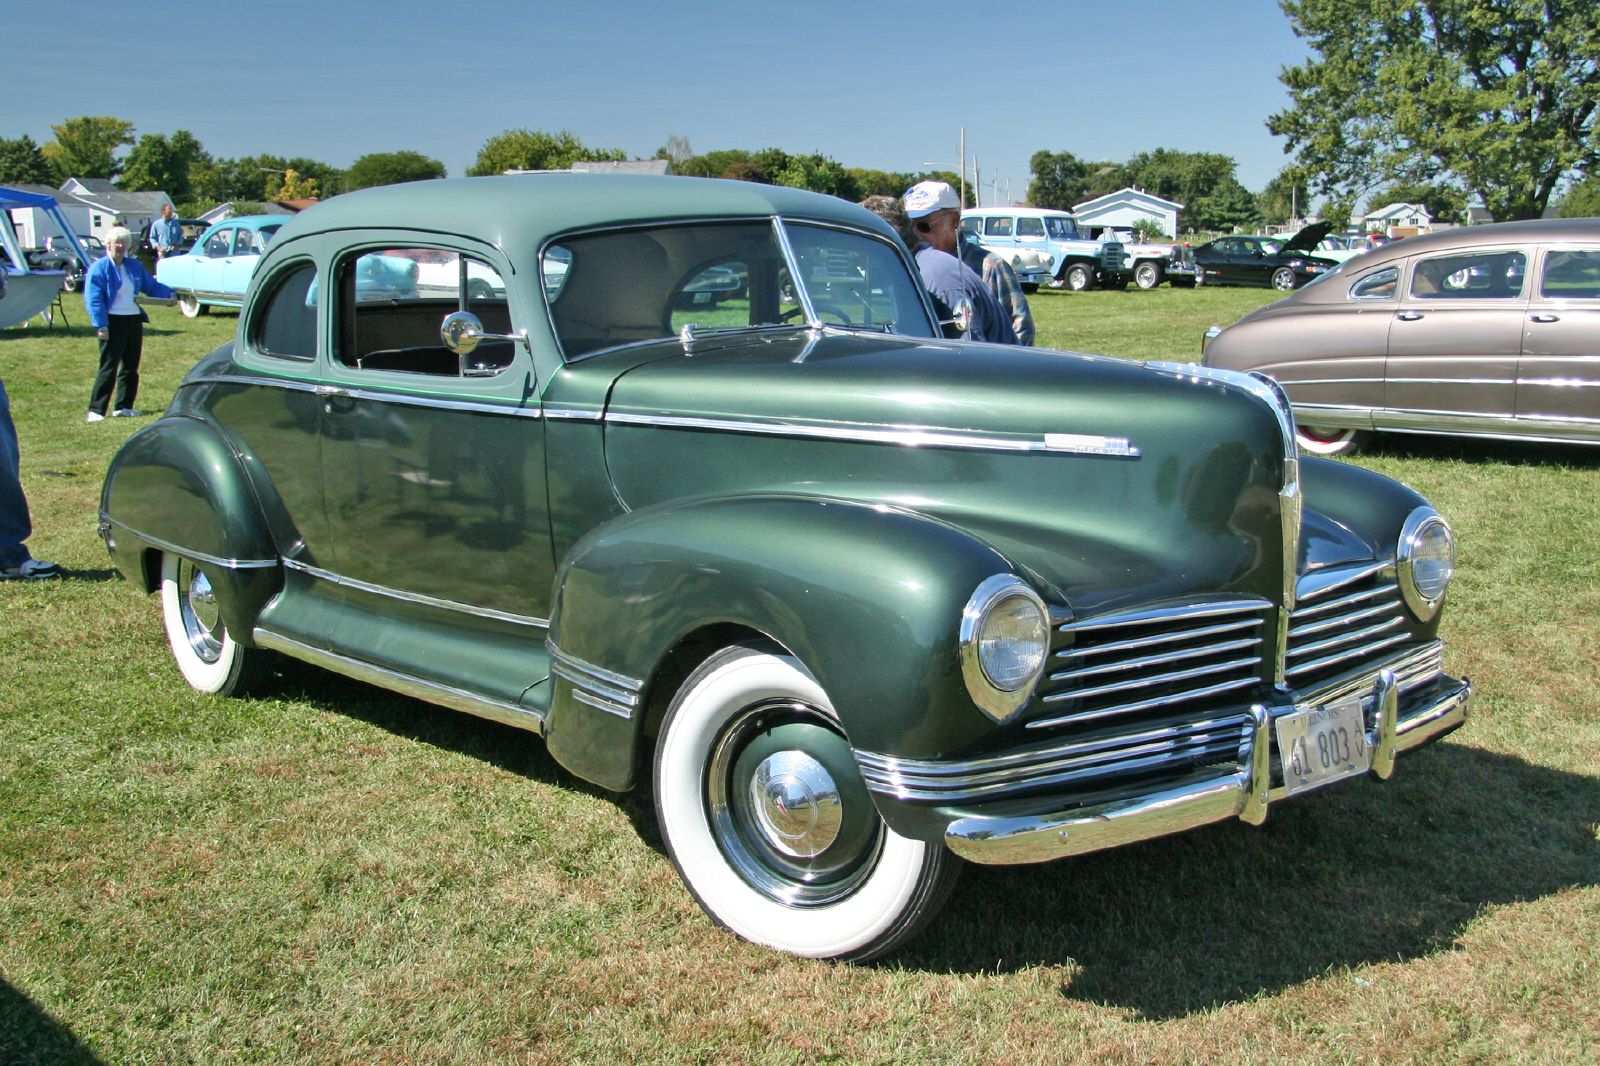 File:1942 Hudson Business Coup.jpg - Wikimedia Commons